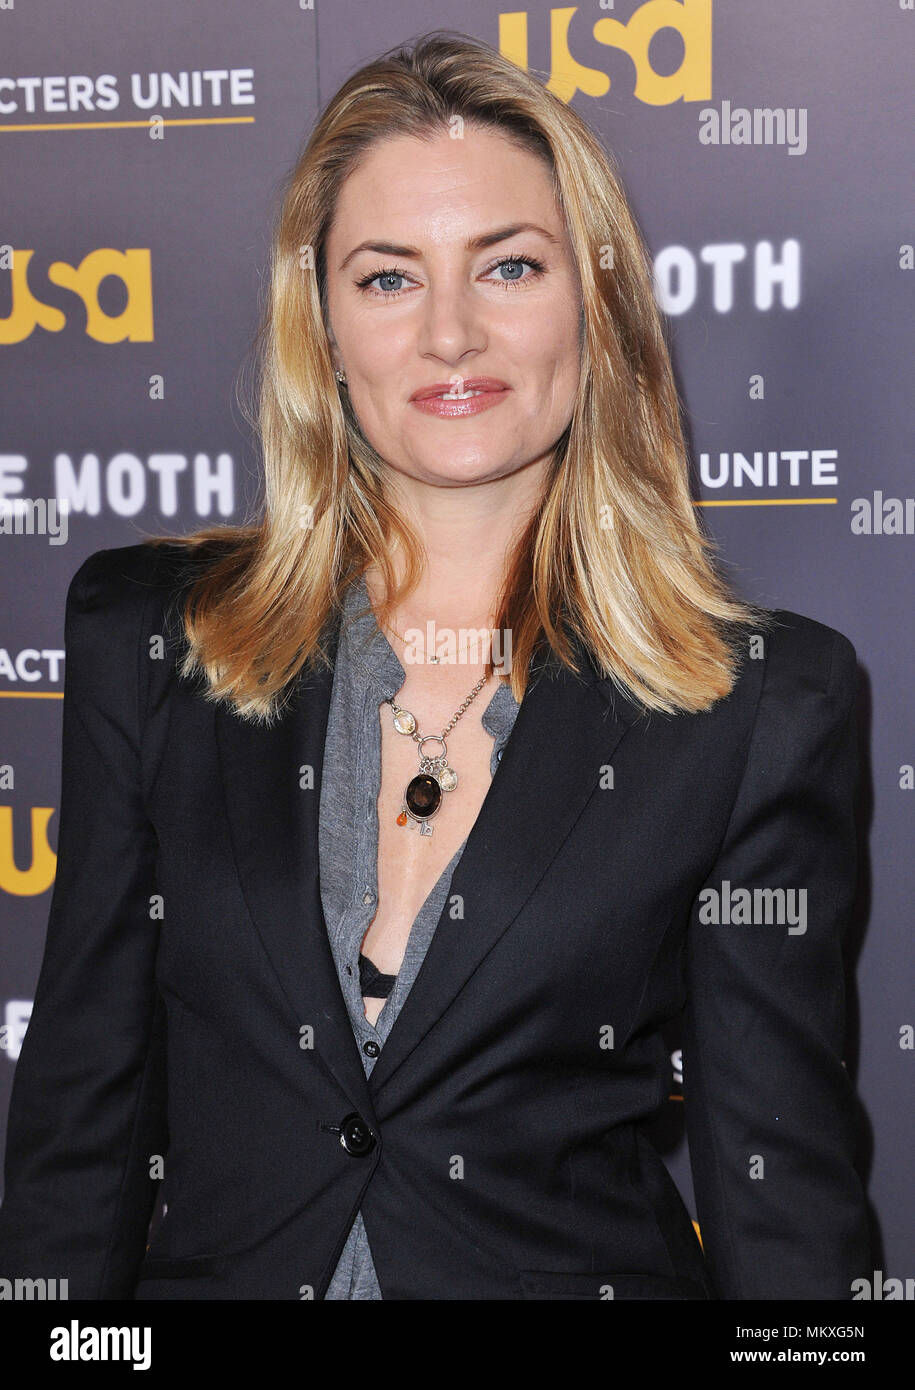 Celebrites Madchen Amick nude photos 2019